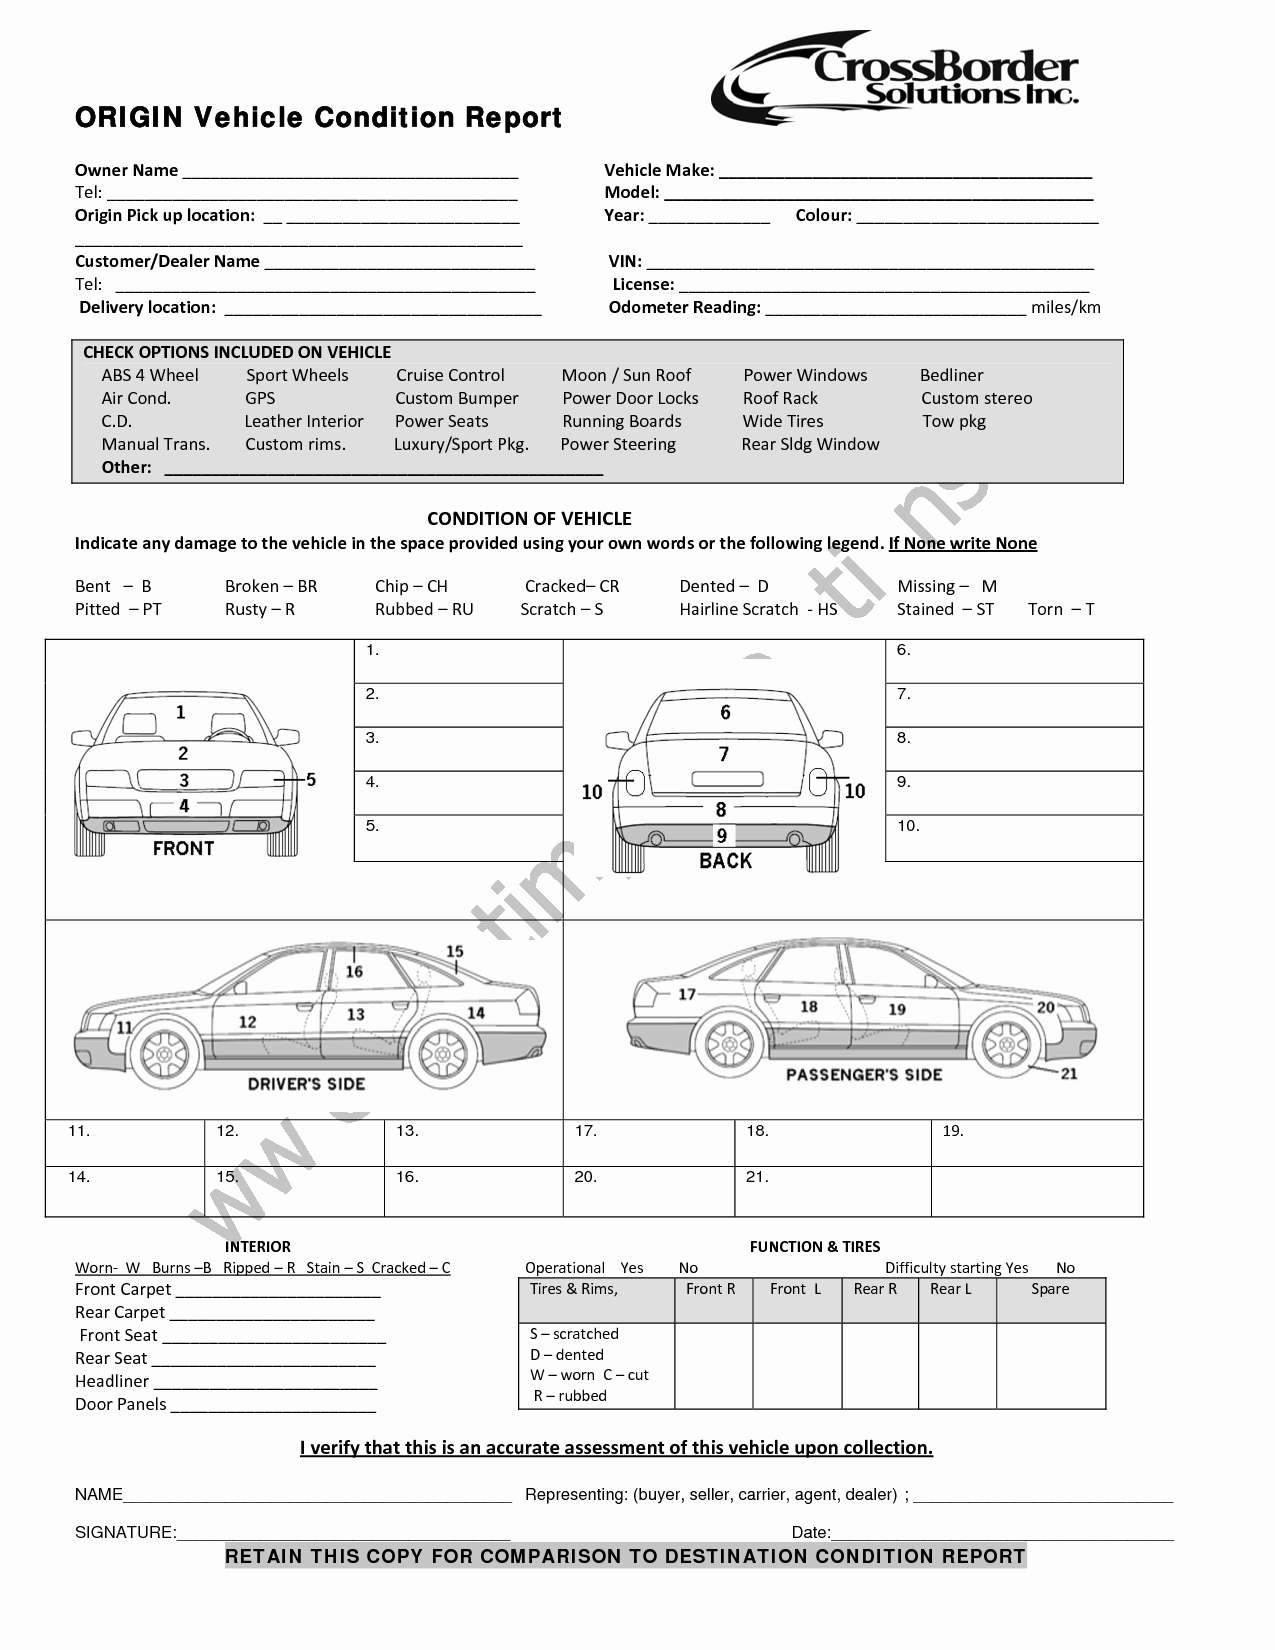 Vehicle Inspection Report Template Best Of Vehicle Condition Report Templates Word Excel Samples